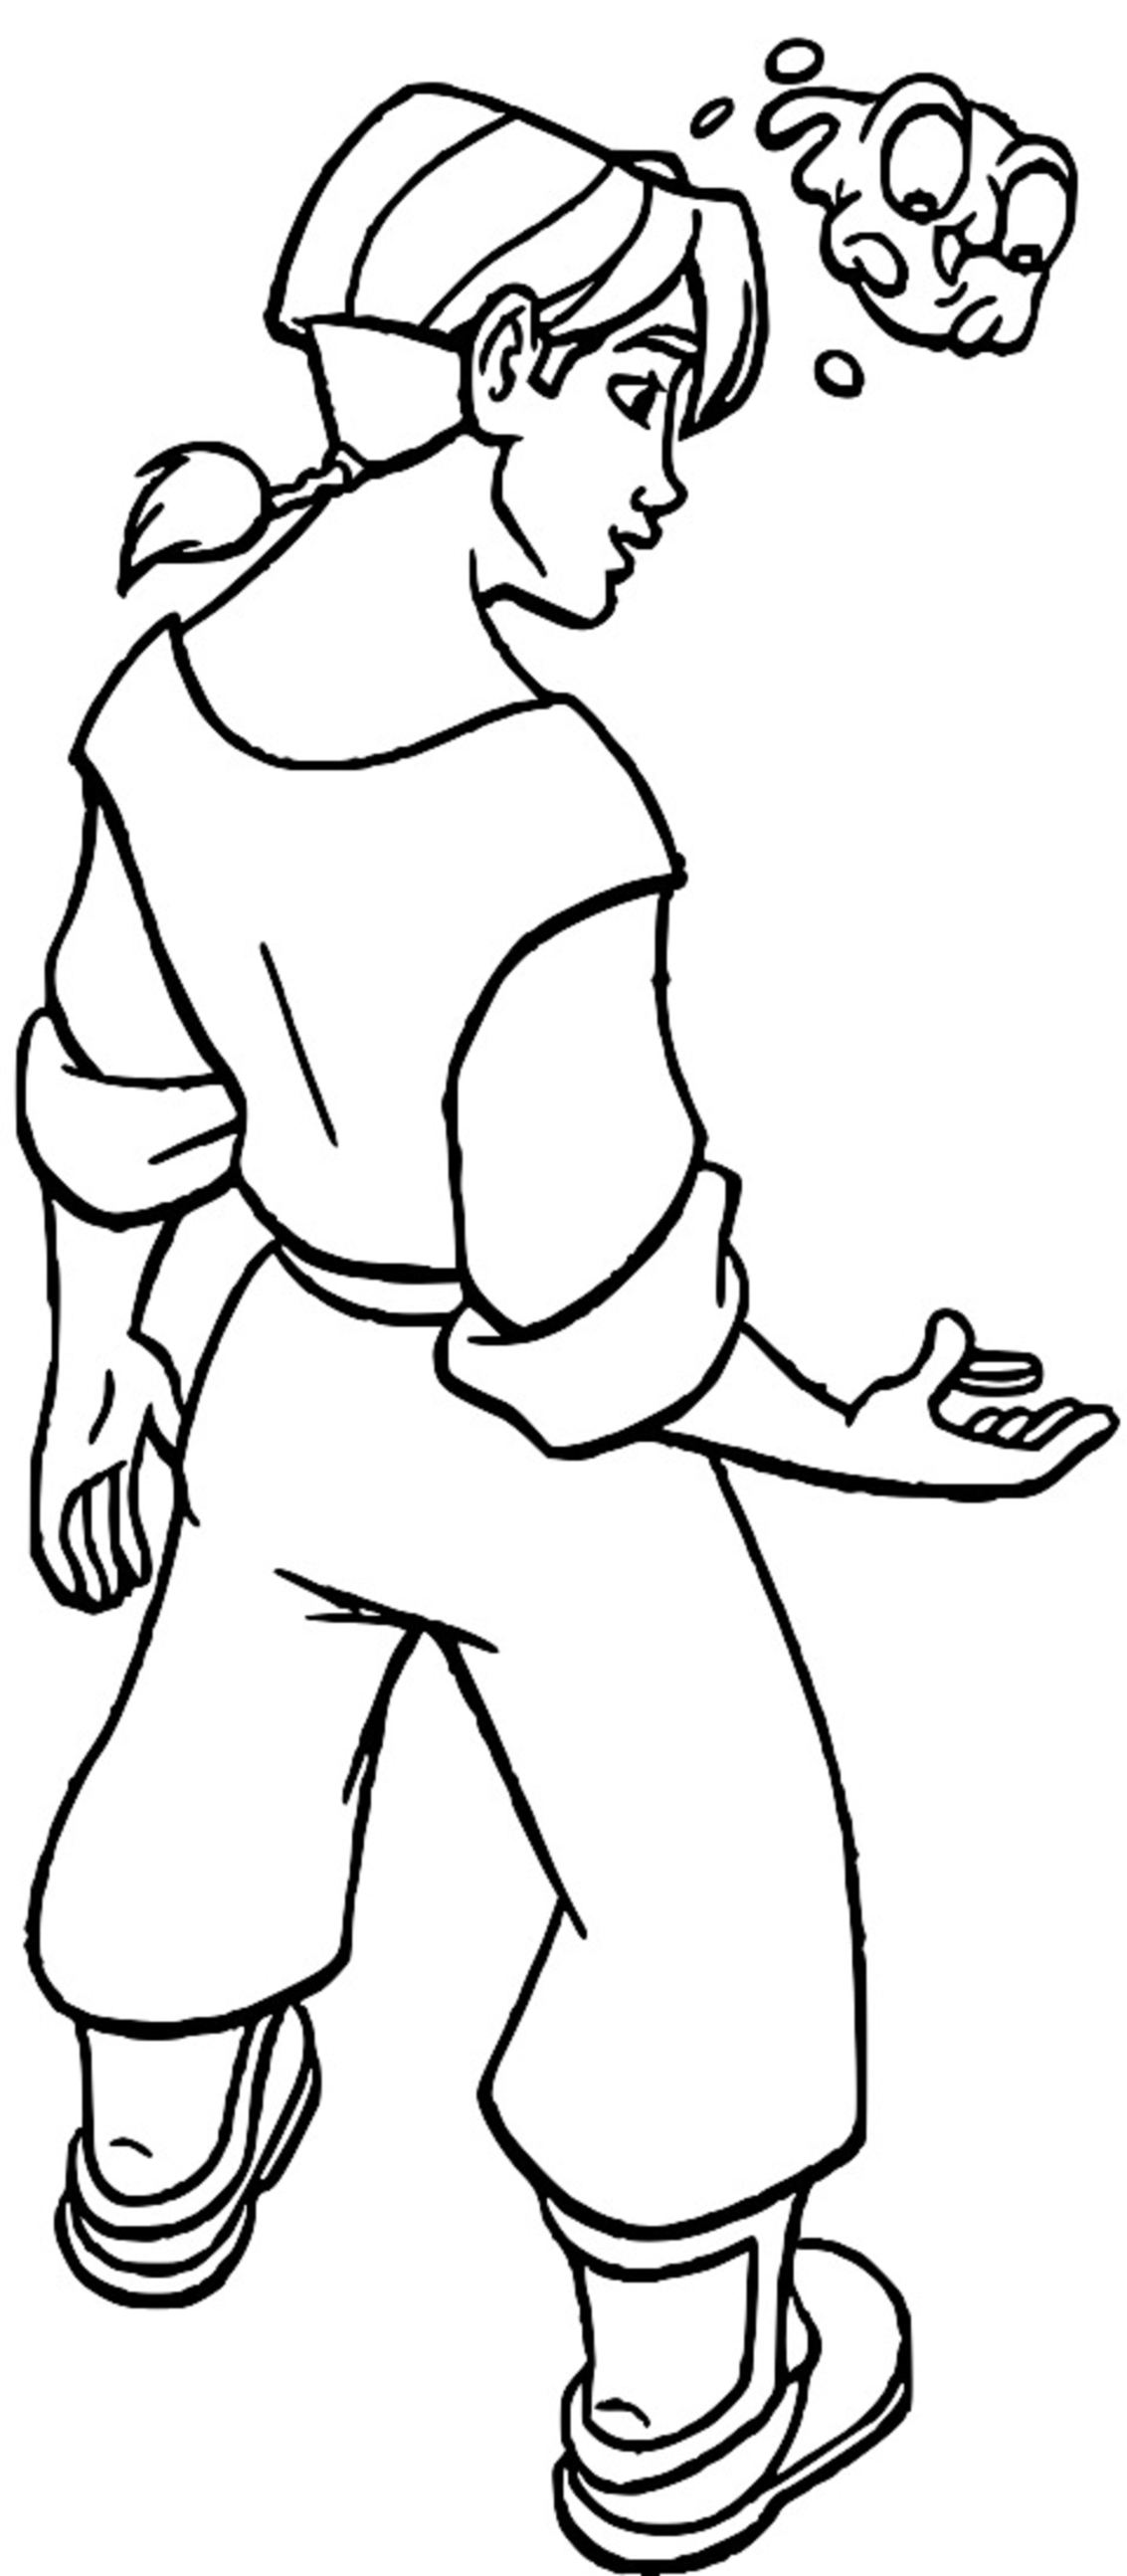 Treasure Planet pfg39 Coloring Pages_Cartoonized